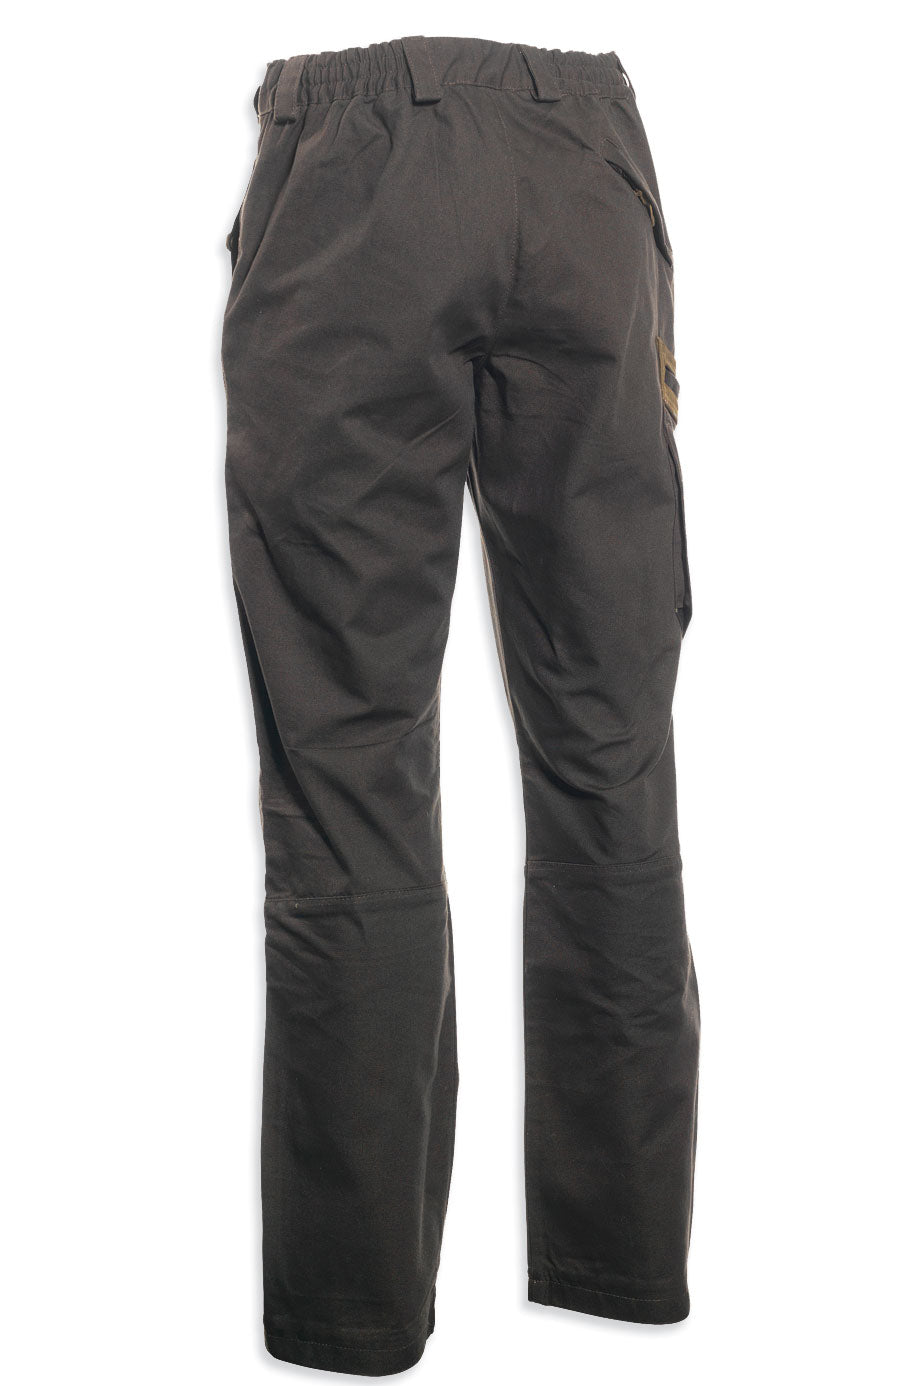 rear view Deerhunter Monteria Shooting Trousers